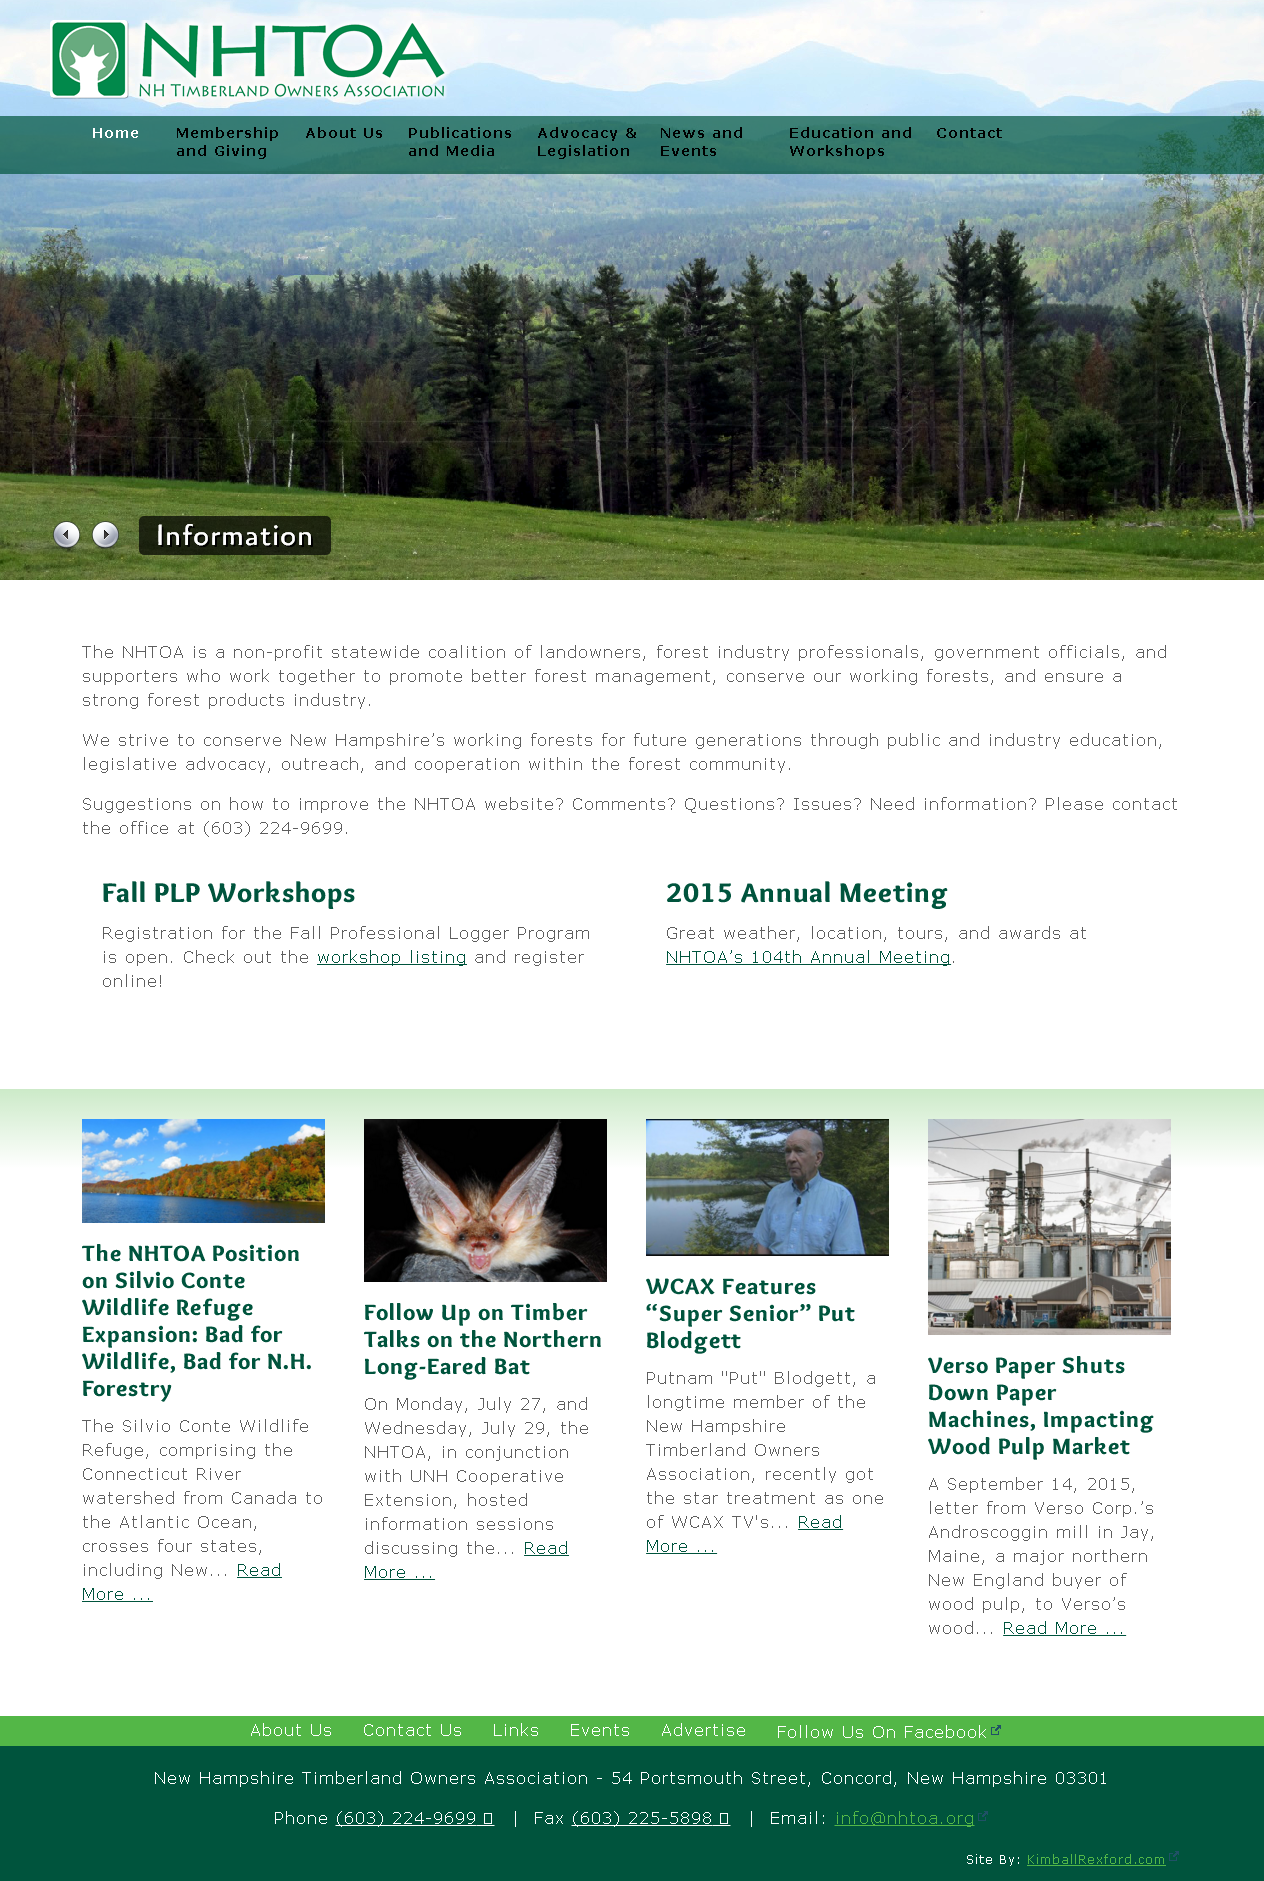 New Hampshire Timberland Owners Association